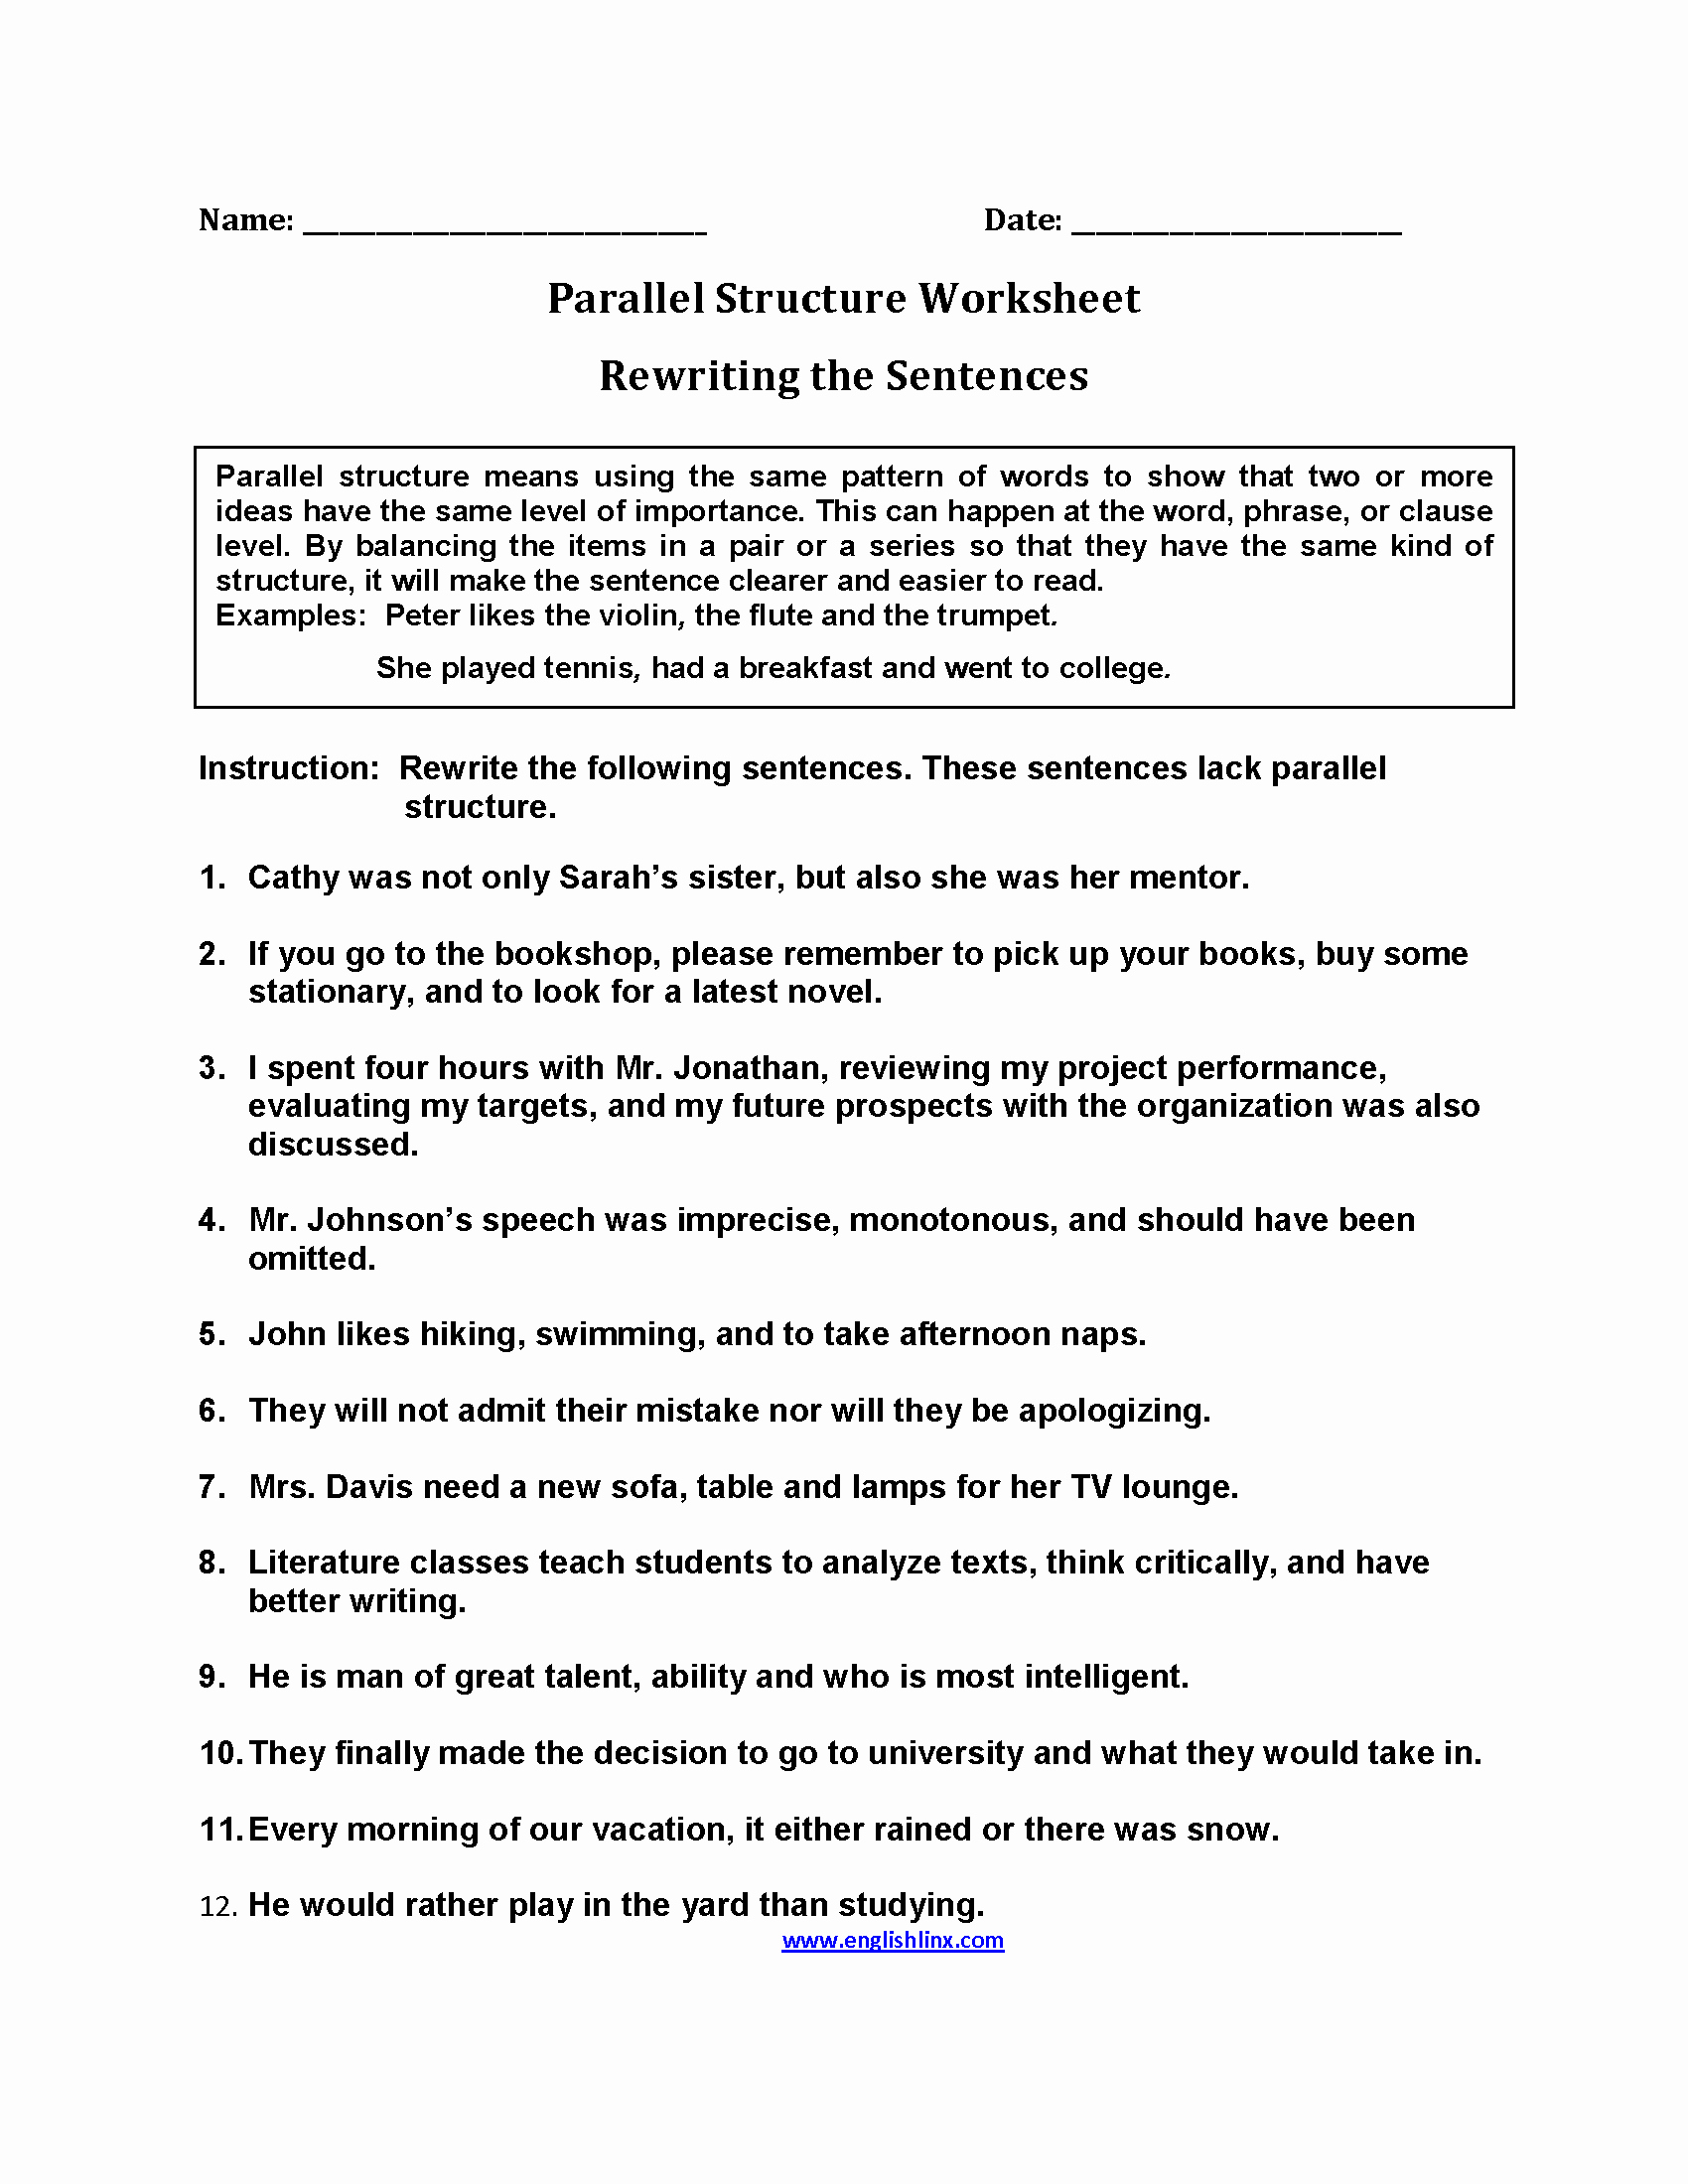 Parallel Structure Worksheet with Answers Elegant Rewriting Sentences Parallel Structure Worksheets